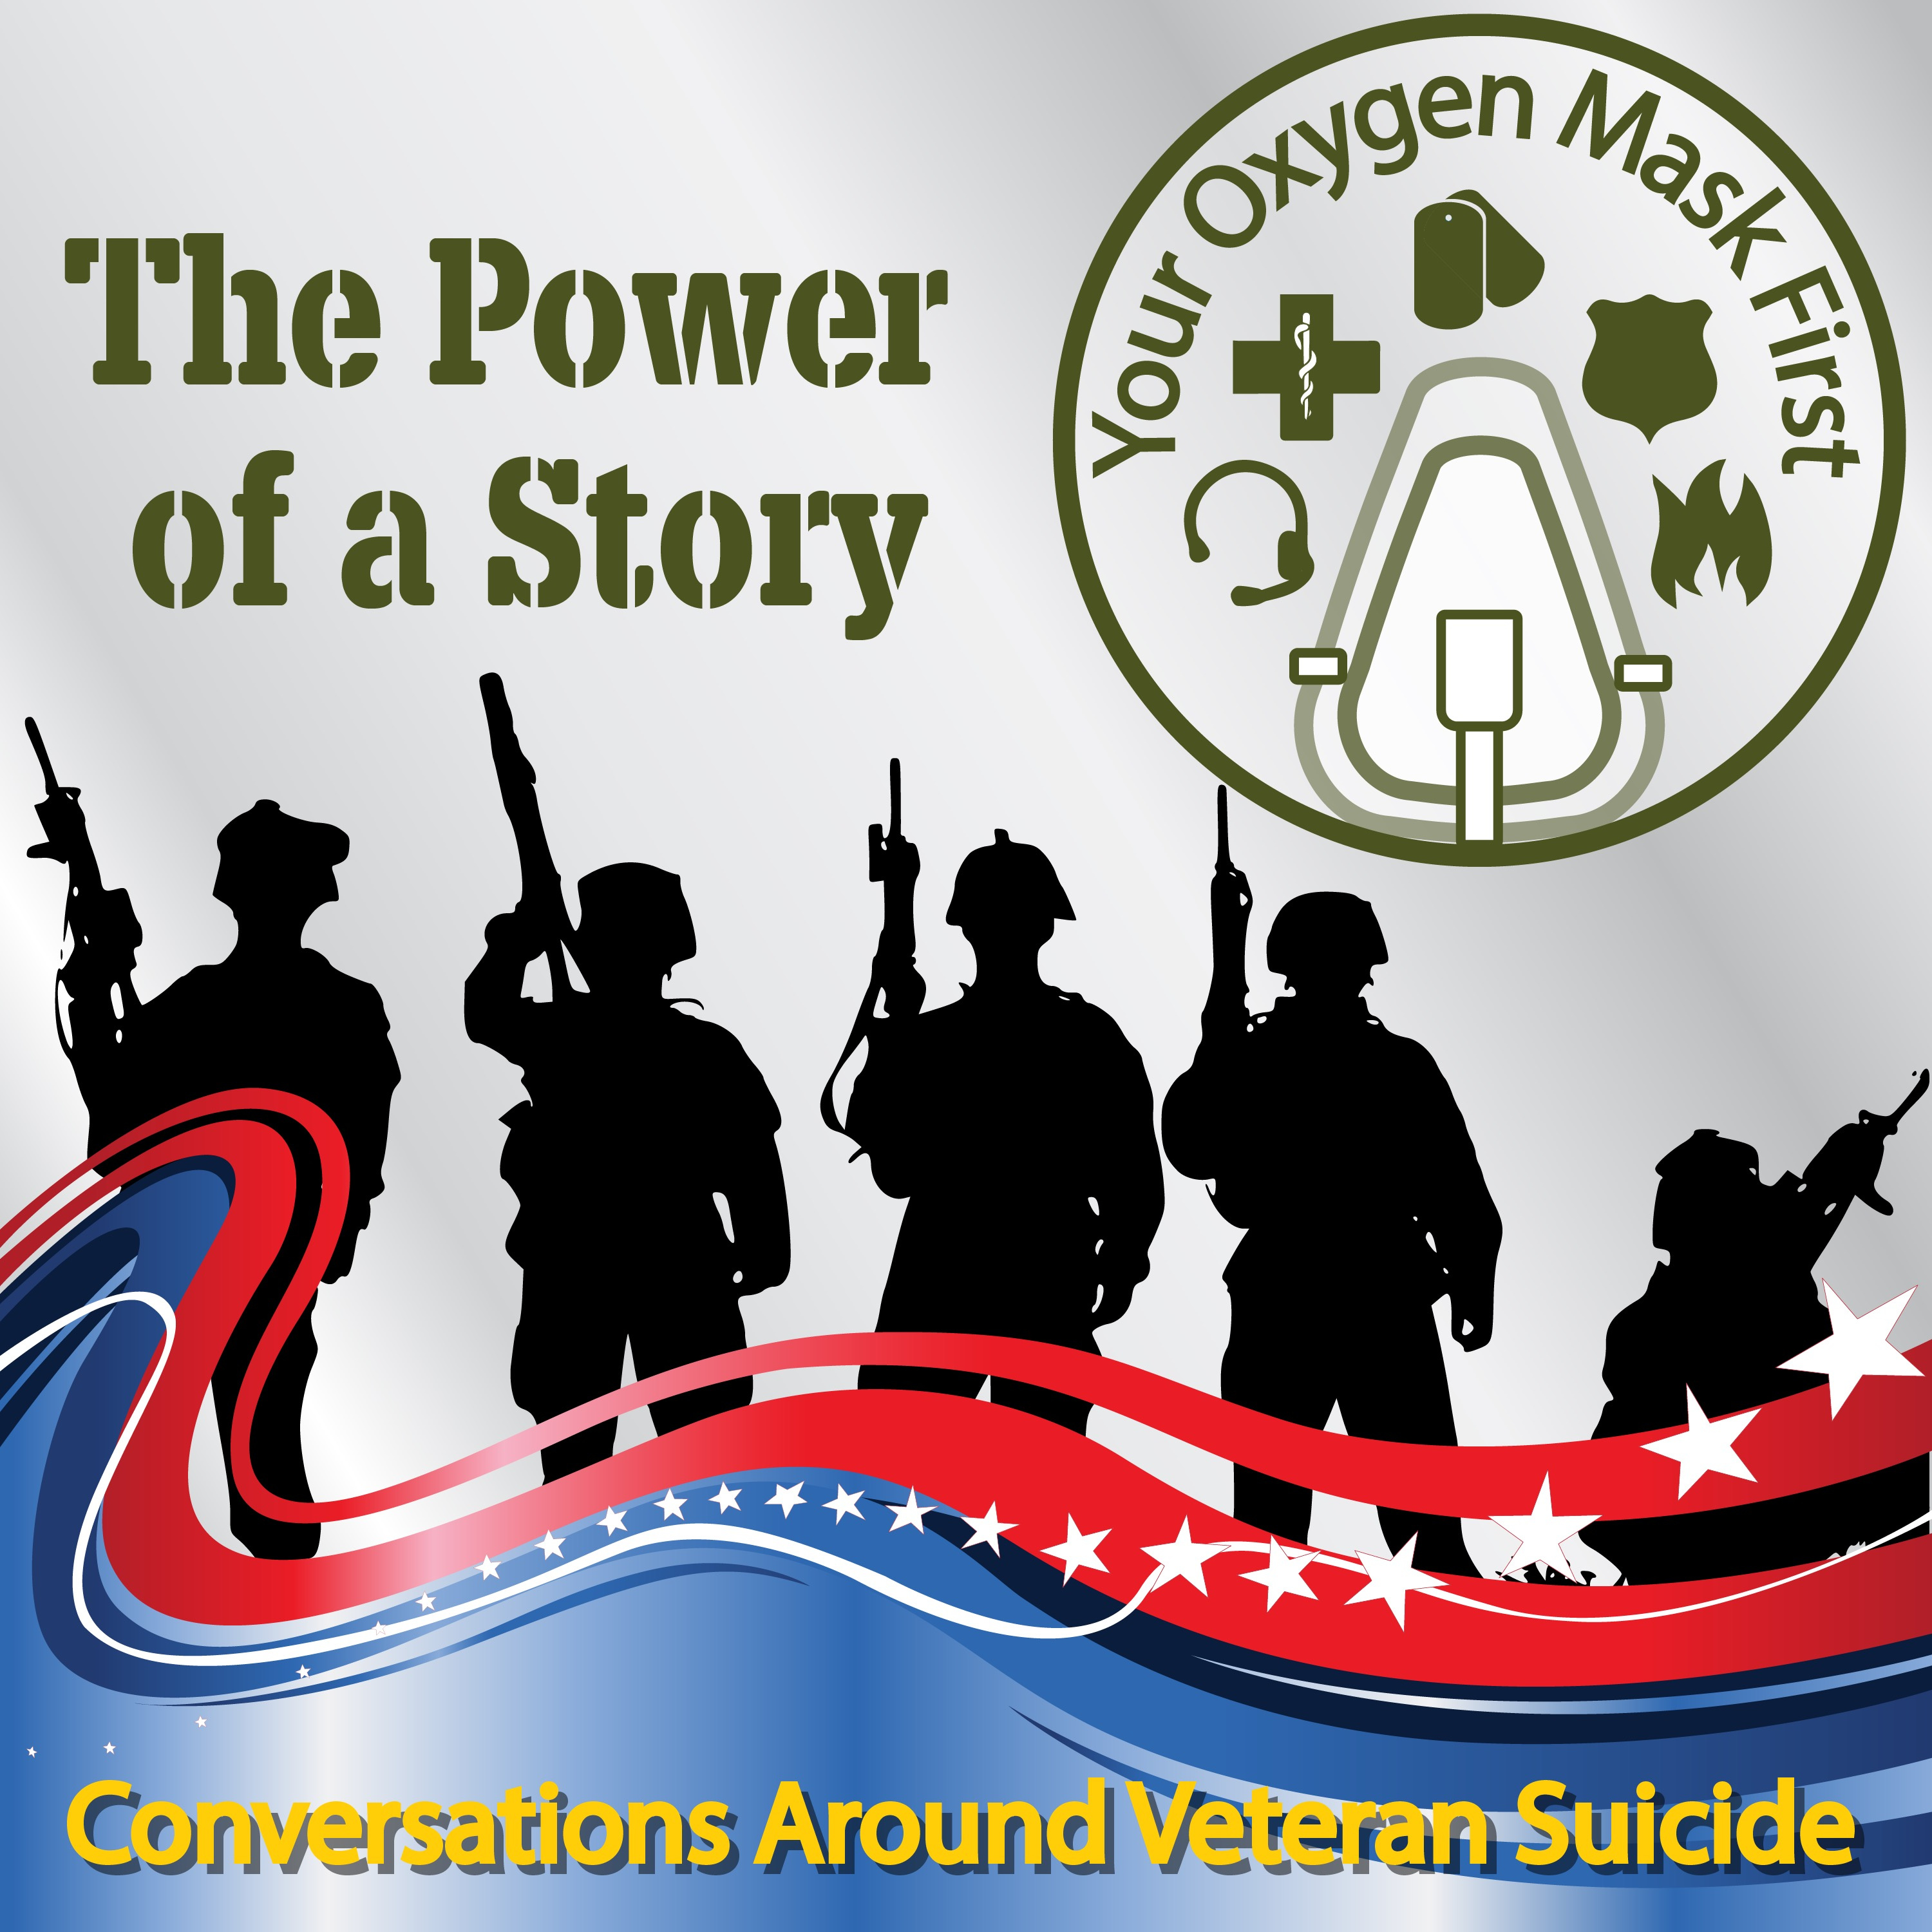 The Mighty Oaks Foundation - Healing Veterans and Marriages